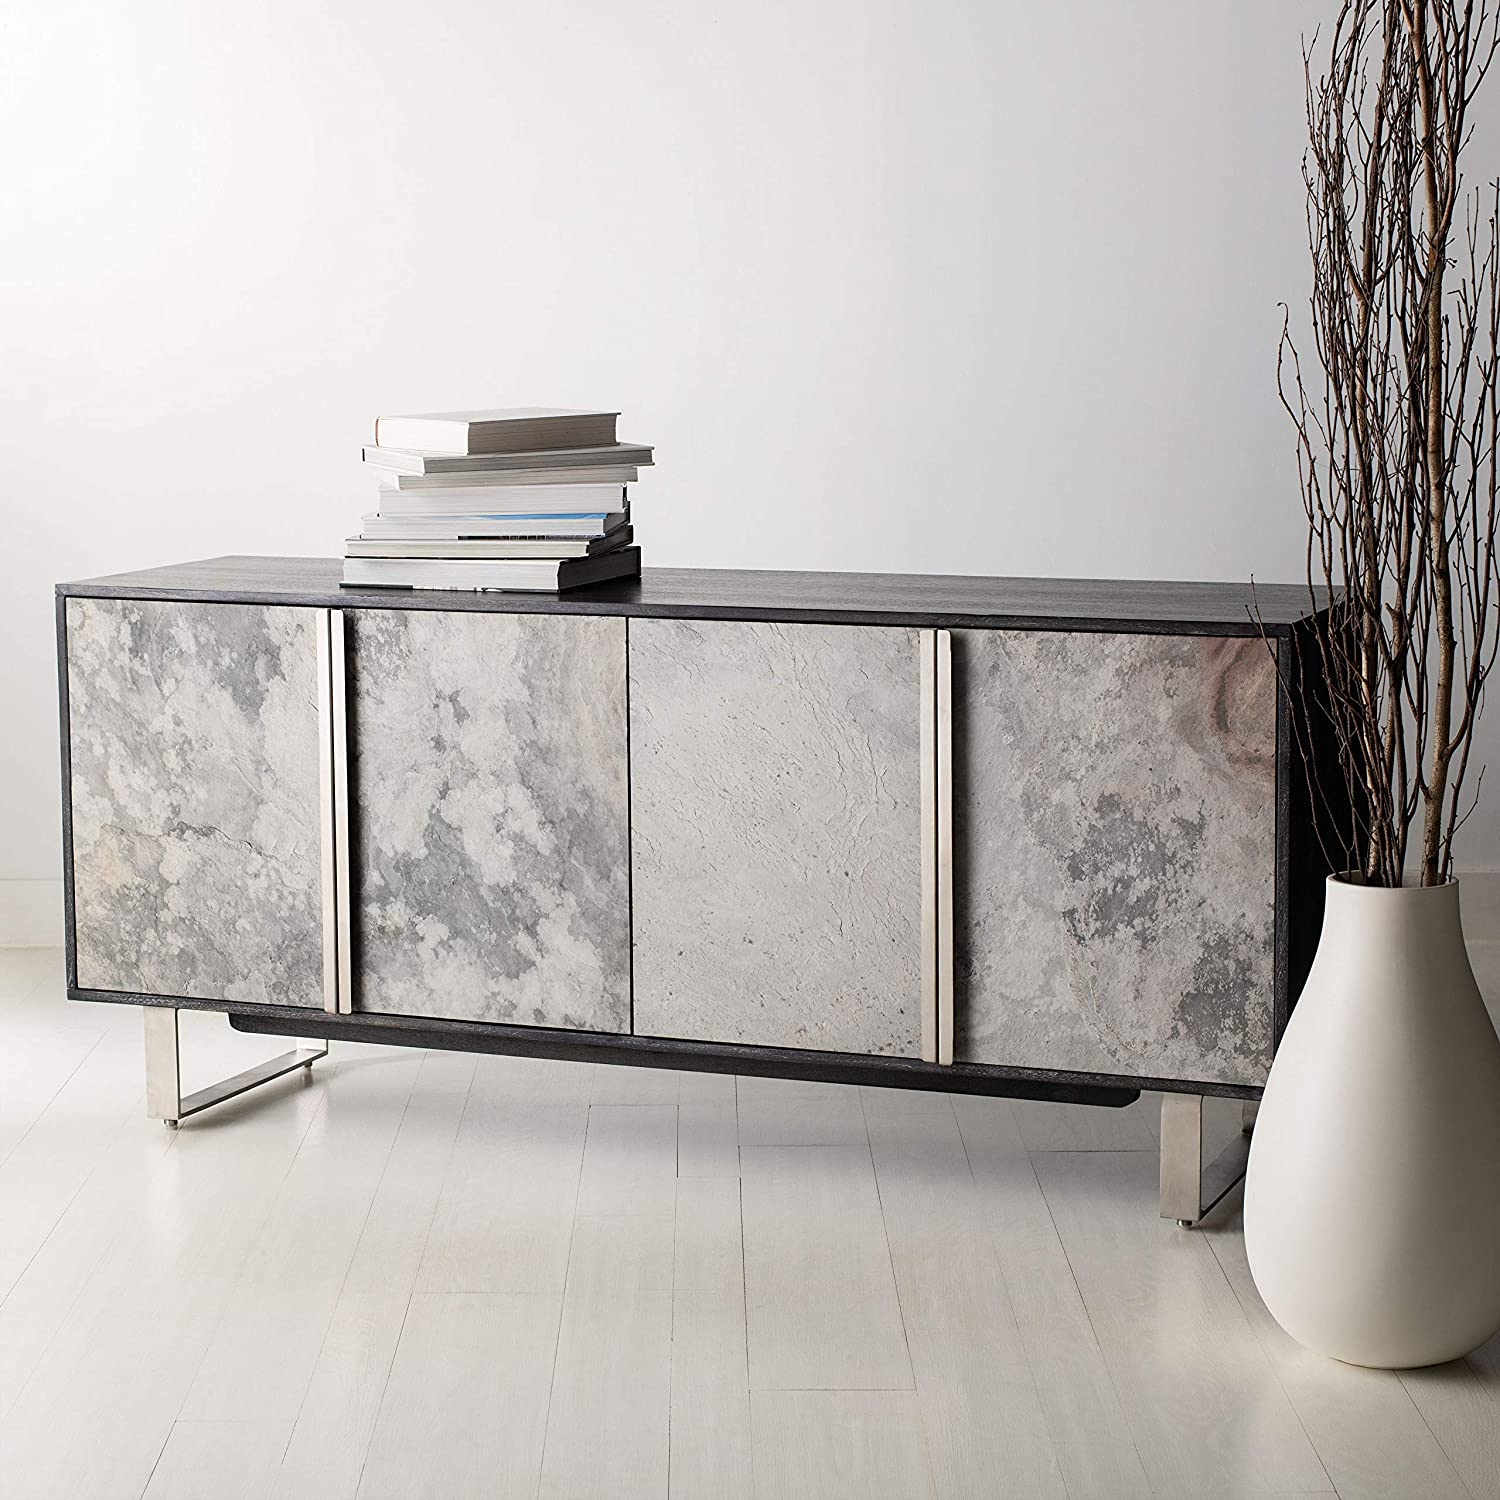 Safavieh Outlet sale feature Couture Home Drake Modern Dedication 4-door Sideboard Black Buffet